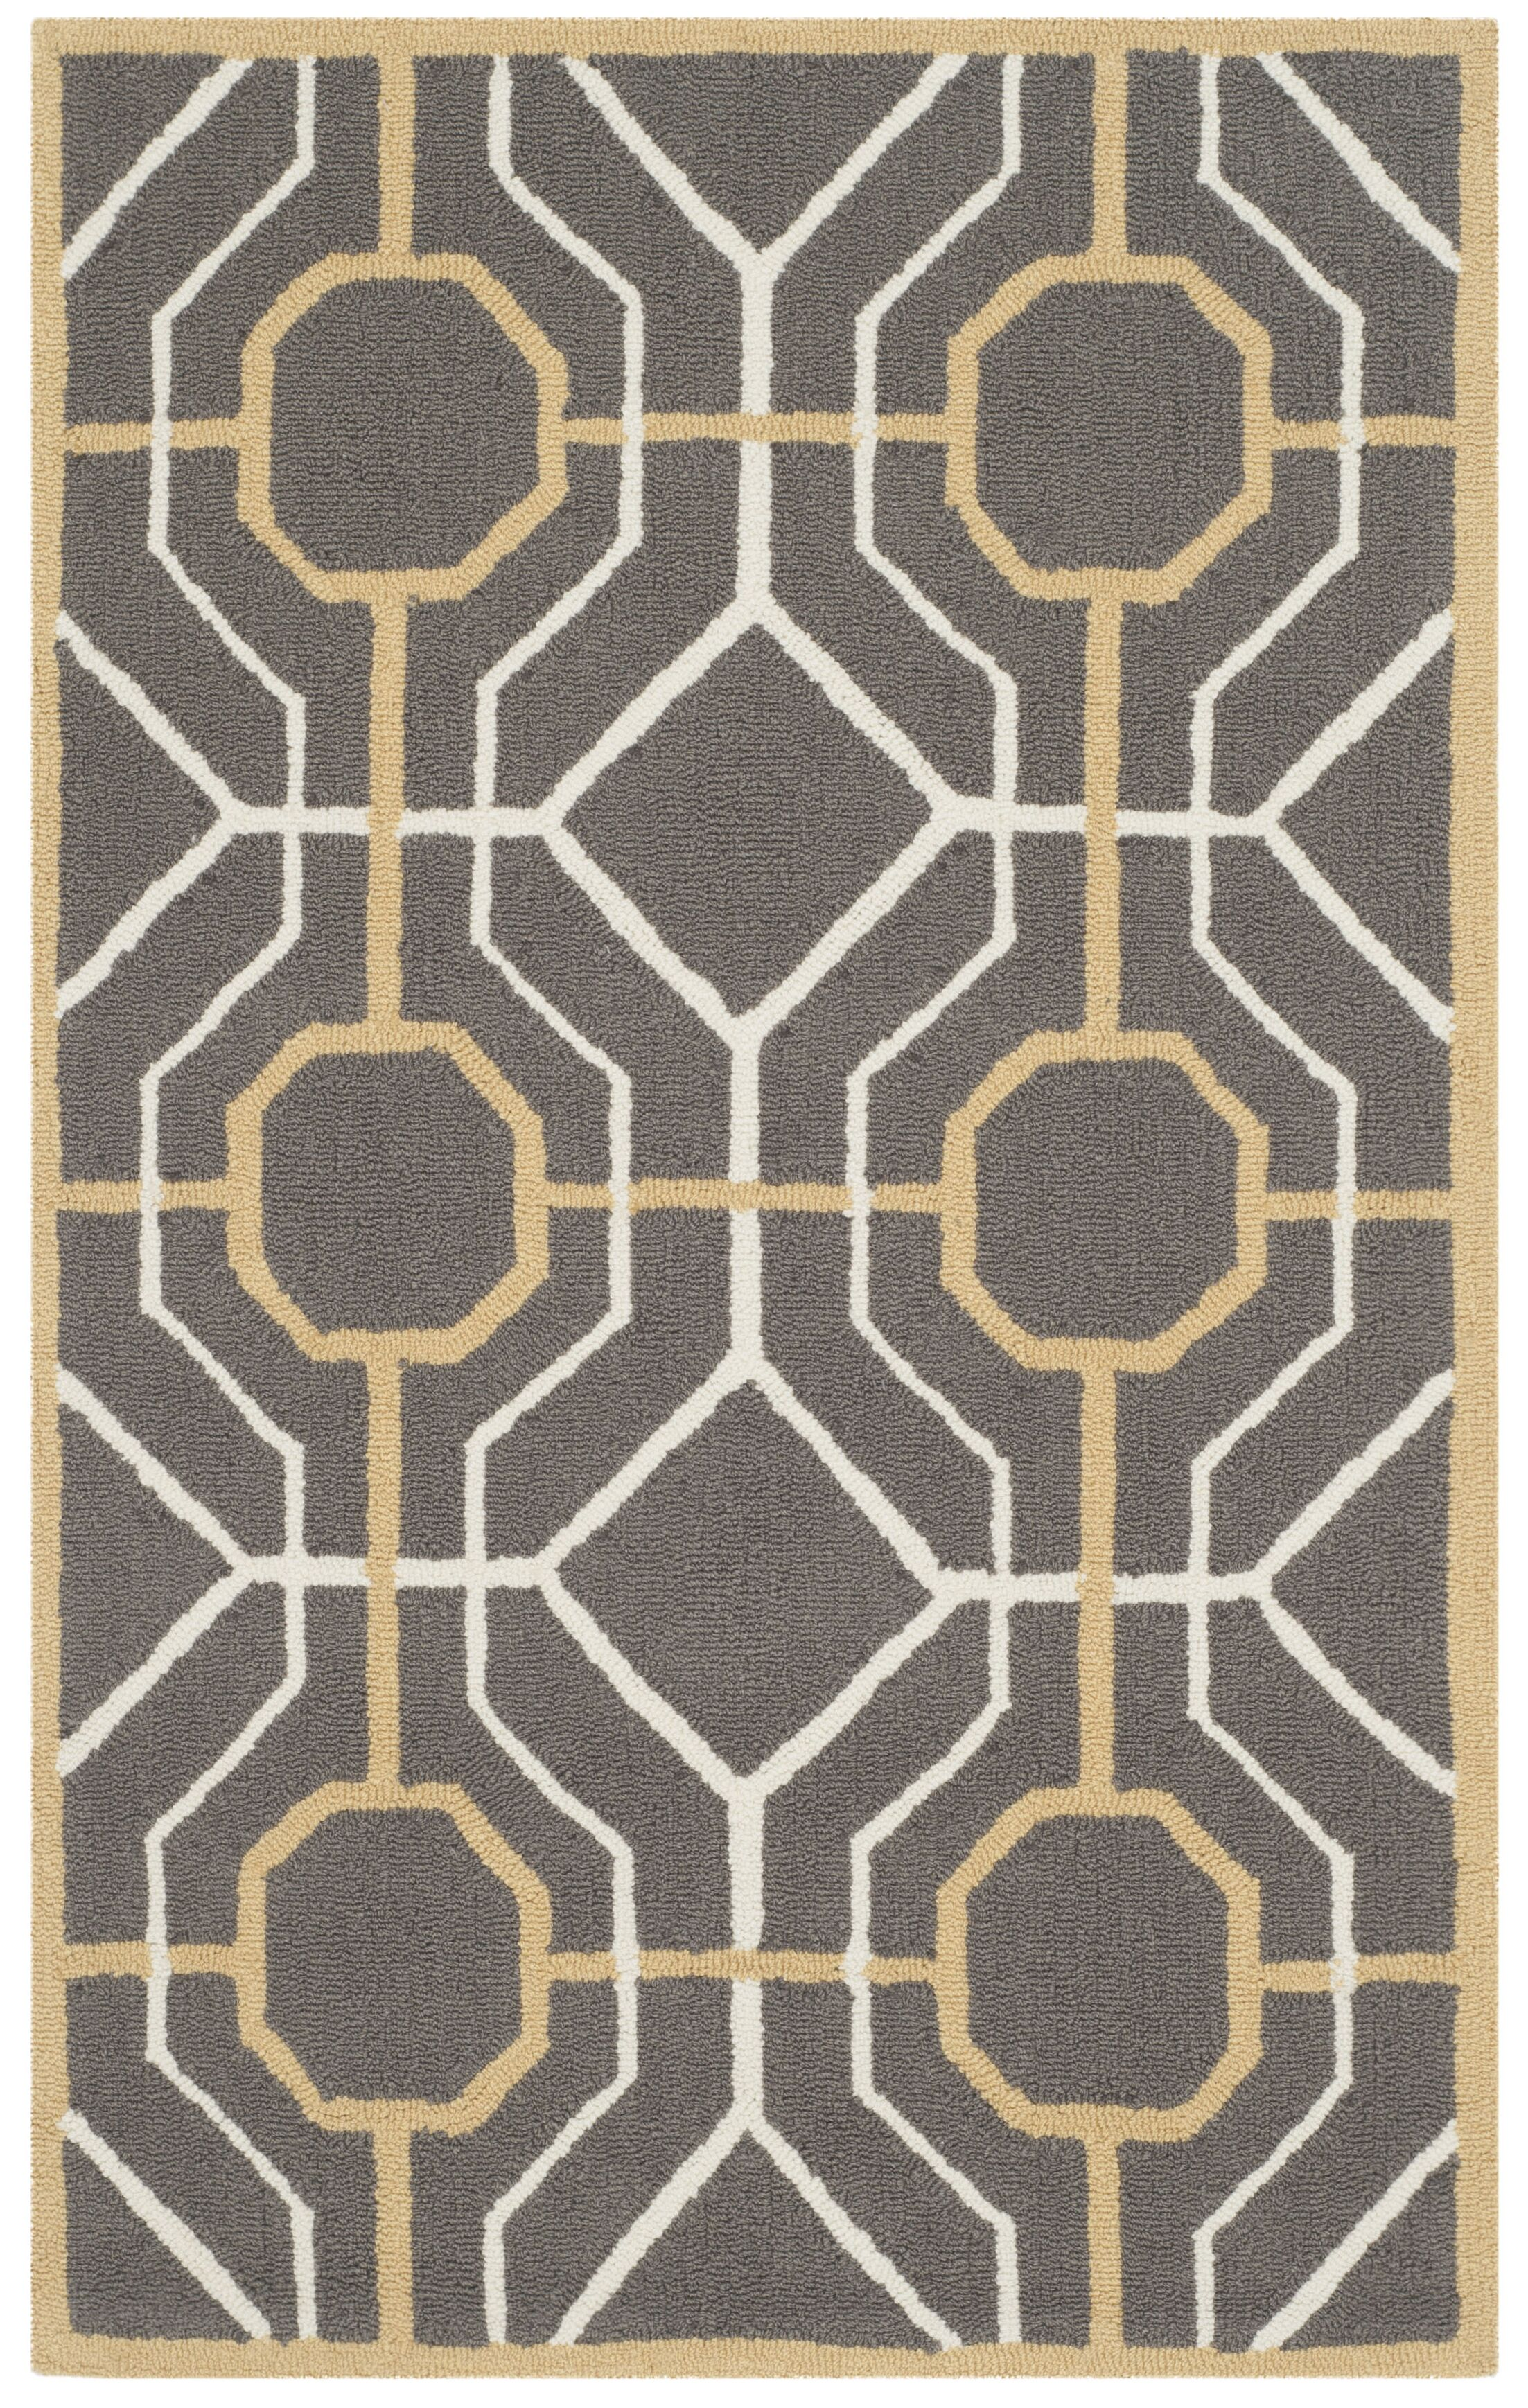 Naya Dark Gray/Ivory Area Rug Rug Size: Rectangle 3'6